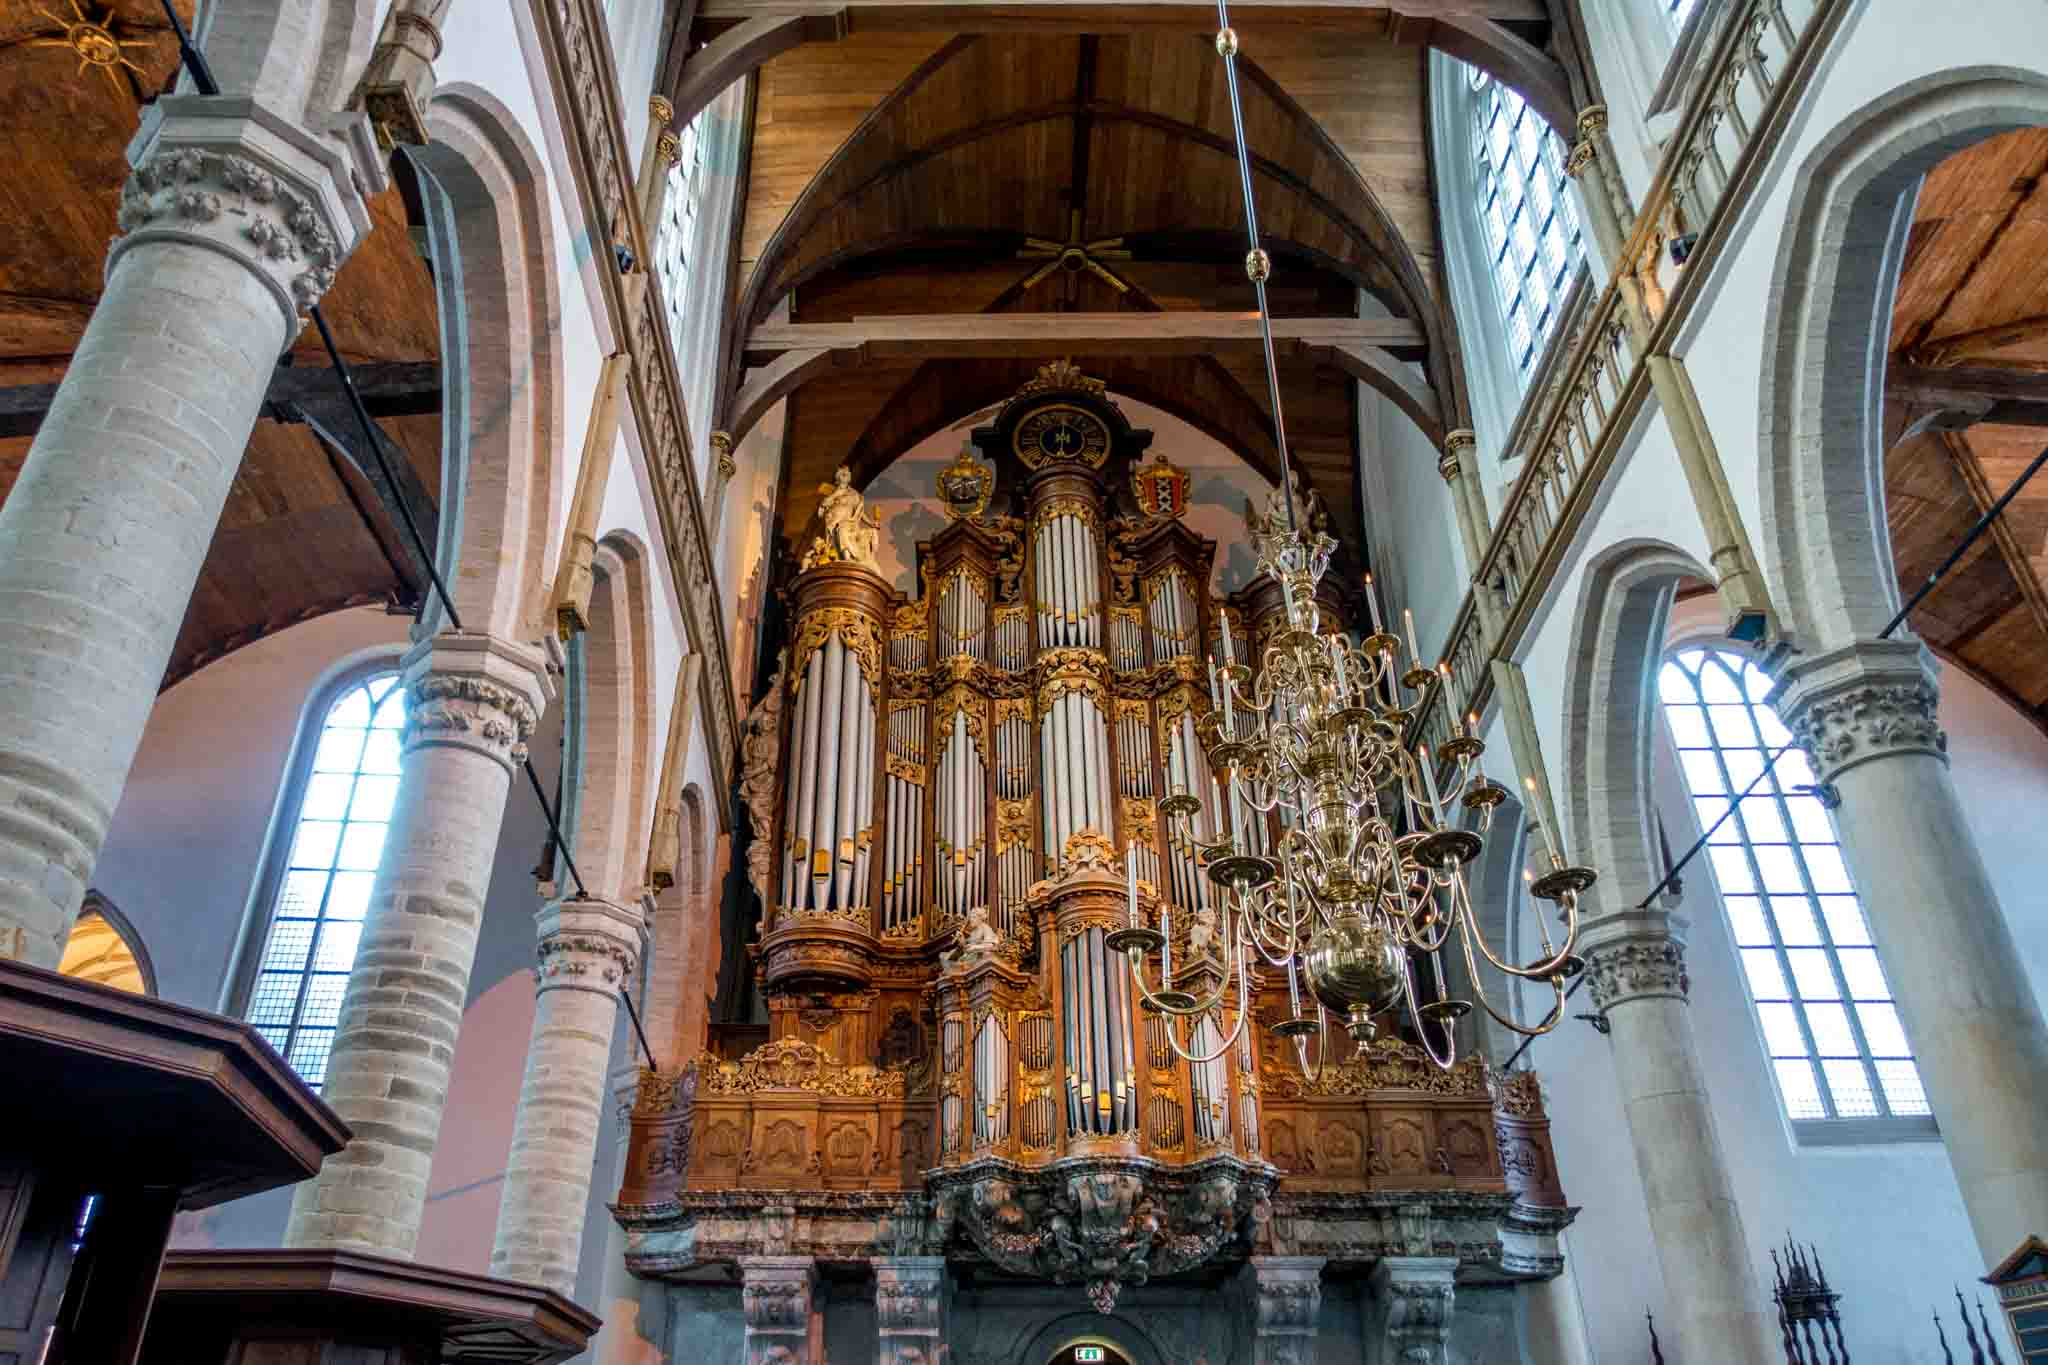 Large pipe organ decorated with statues and wood carvings